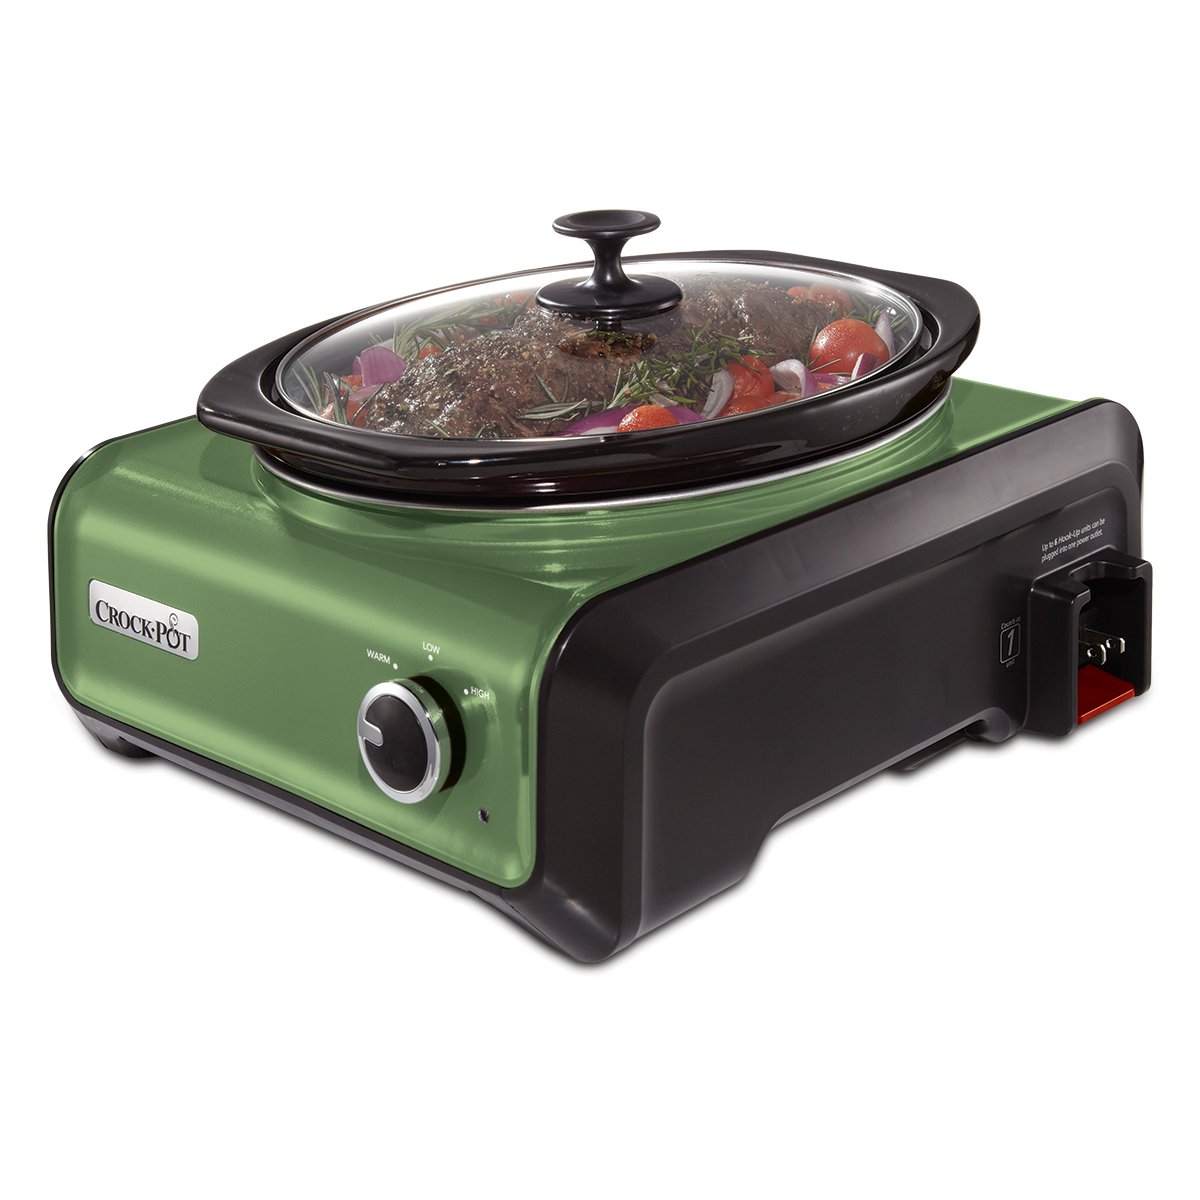 Crock-Pot 3.5-Quart Hook Up Connectable Entertaining System, Metallic Green (SCCPMD3-GR)